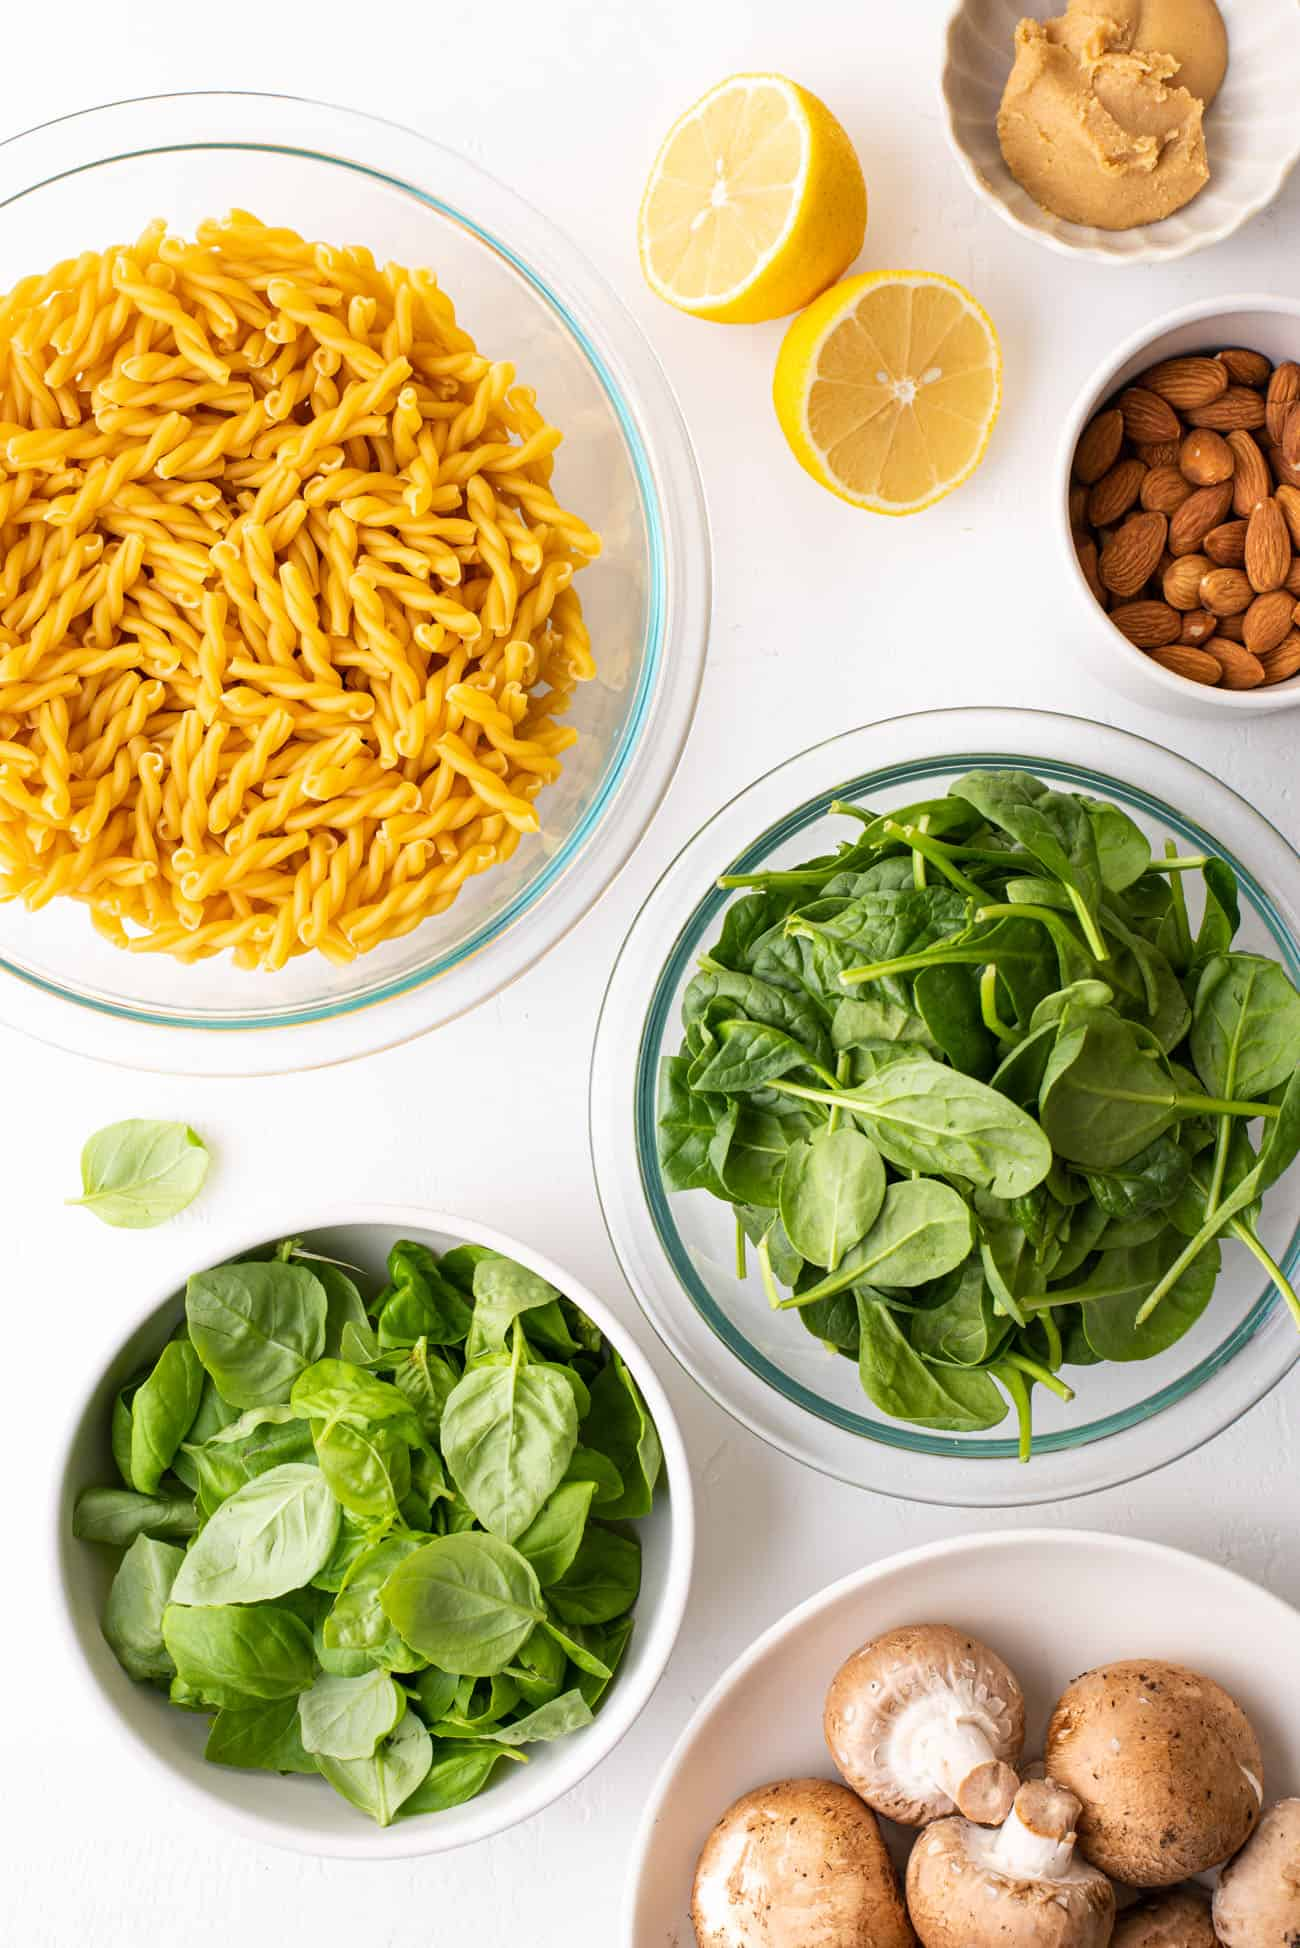 Ingredients gathered to make vegan spinach pesto pasta: gemelli, miso, almonds, spinach, basil, and mushrooms